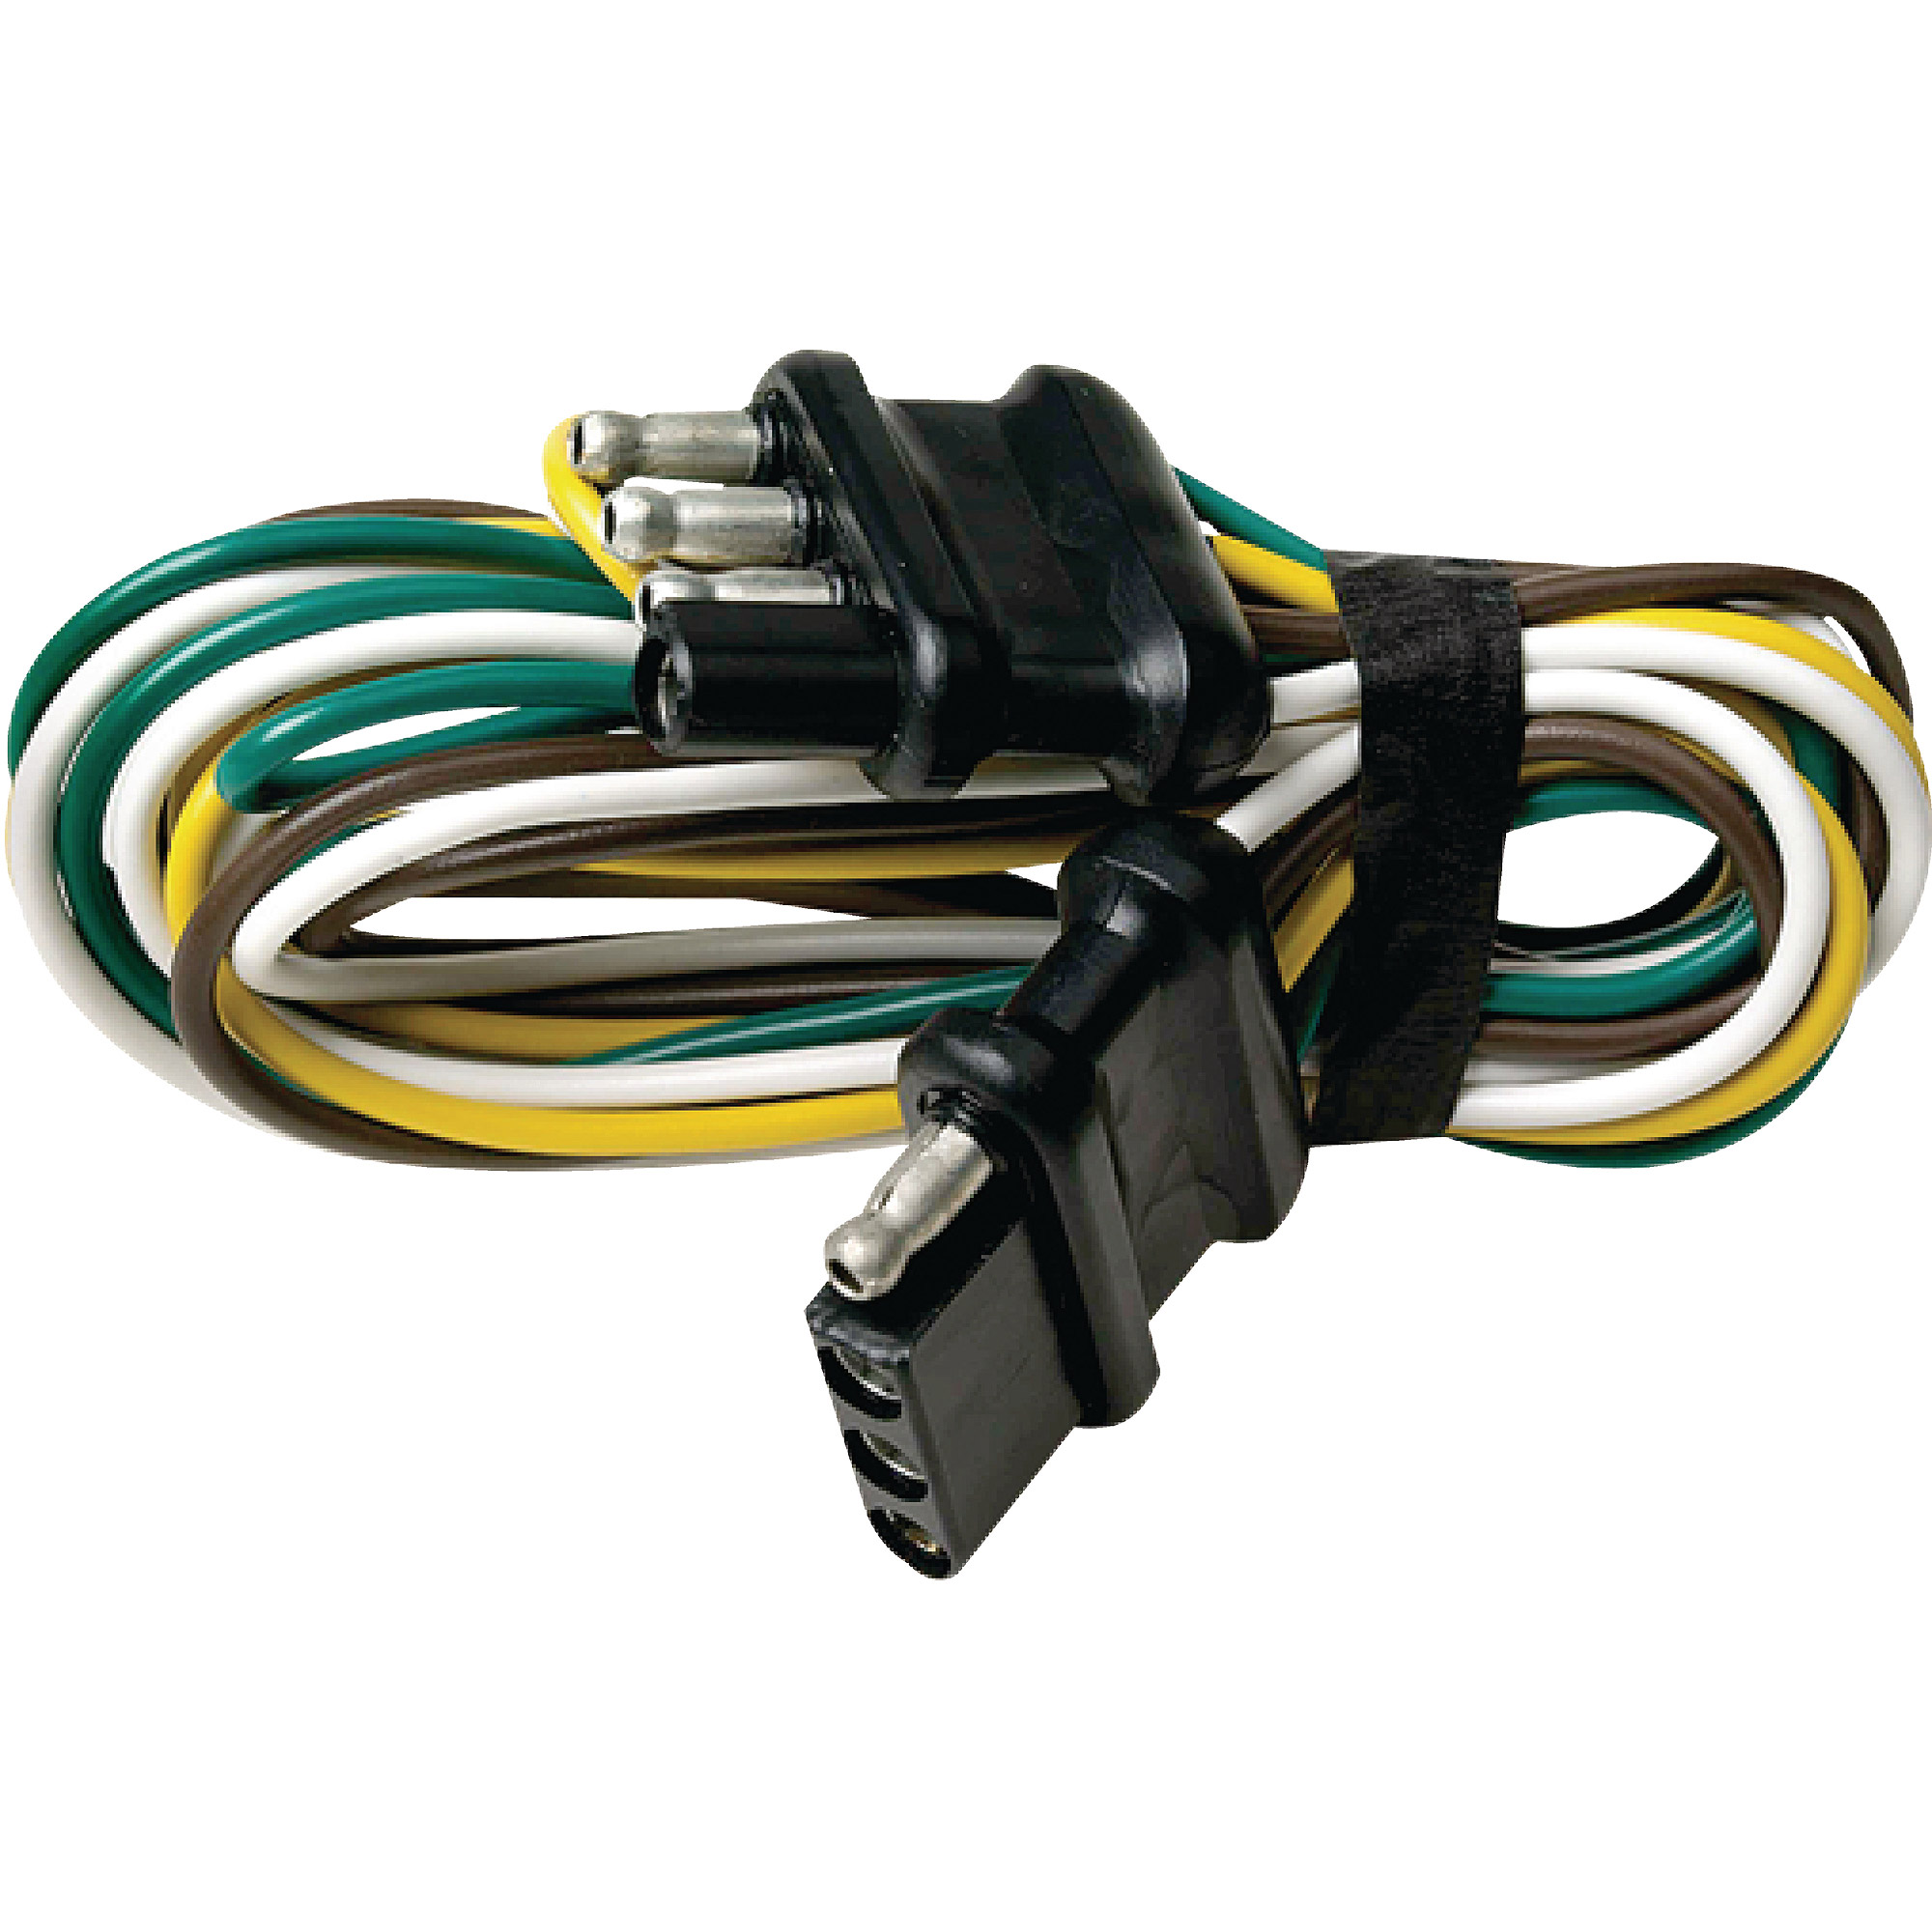 seachoice 48 trailer wire harness extension walmart com rh walmart com trailer light wiring harness extension